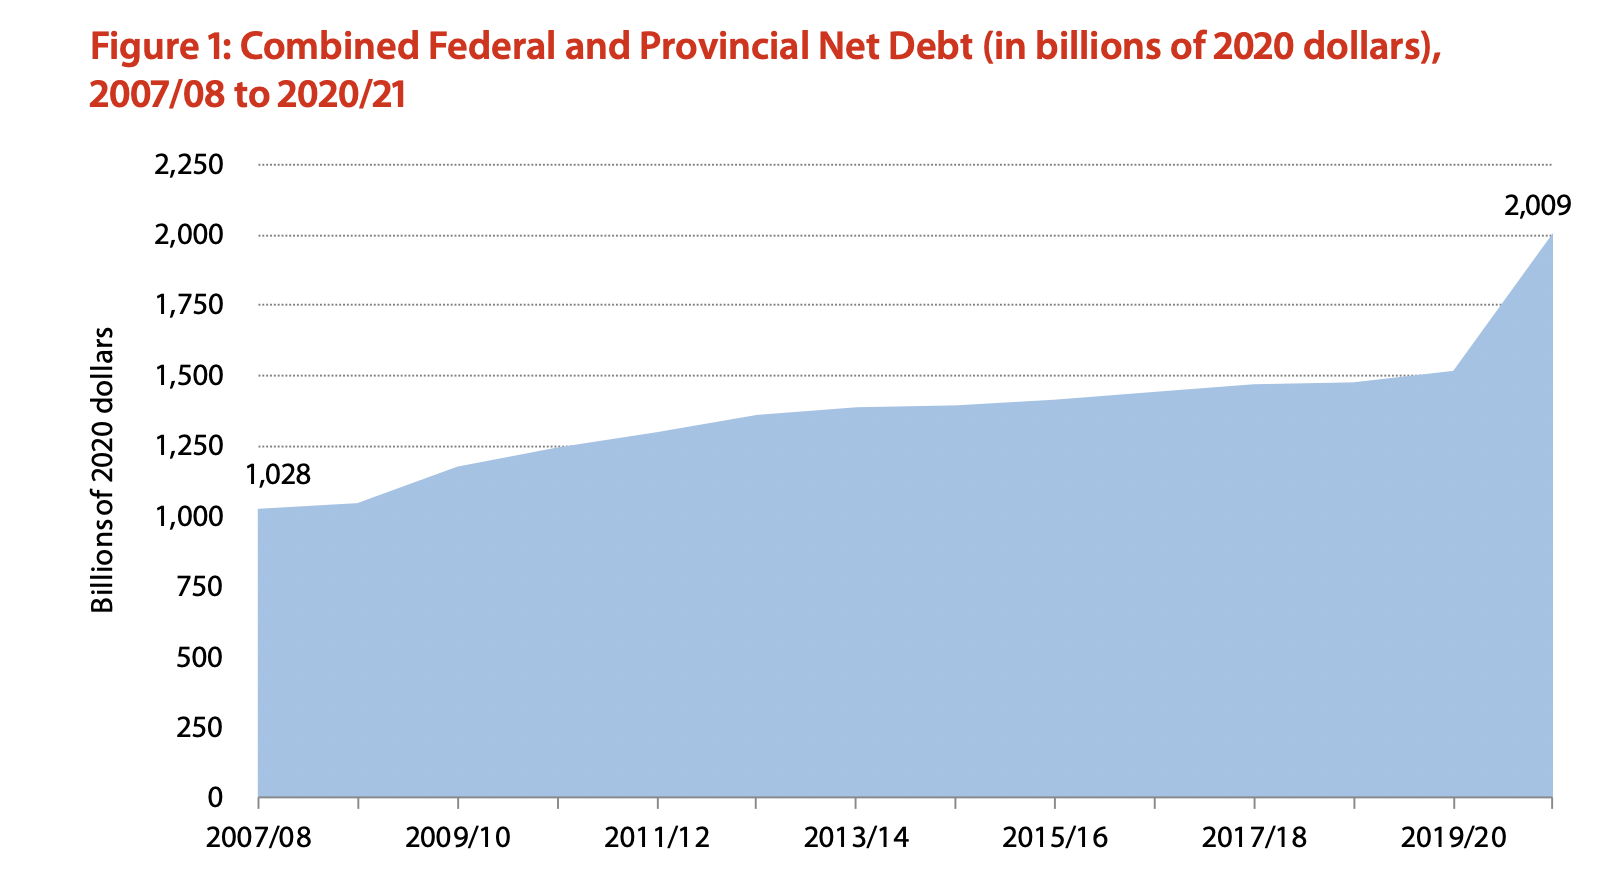 Net debt for provincial + federal debt, per person in Canada from 2007-2020